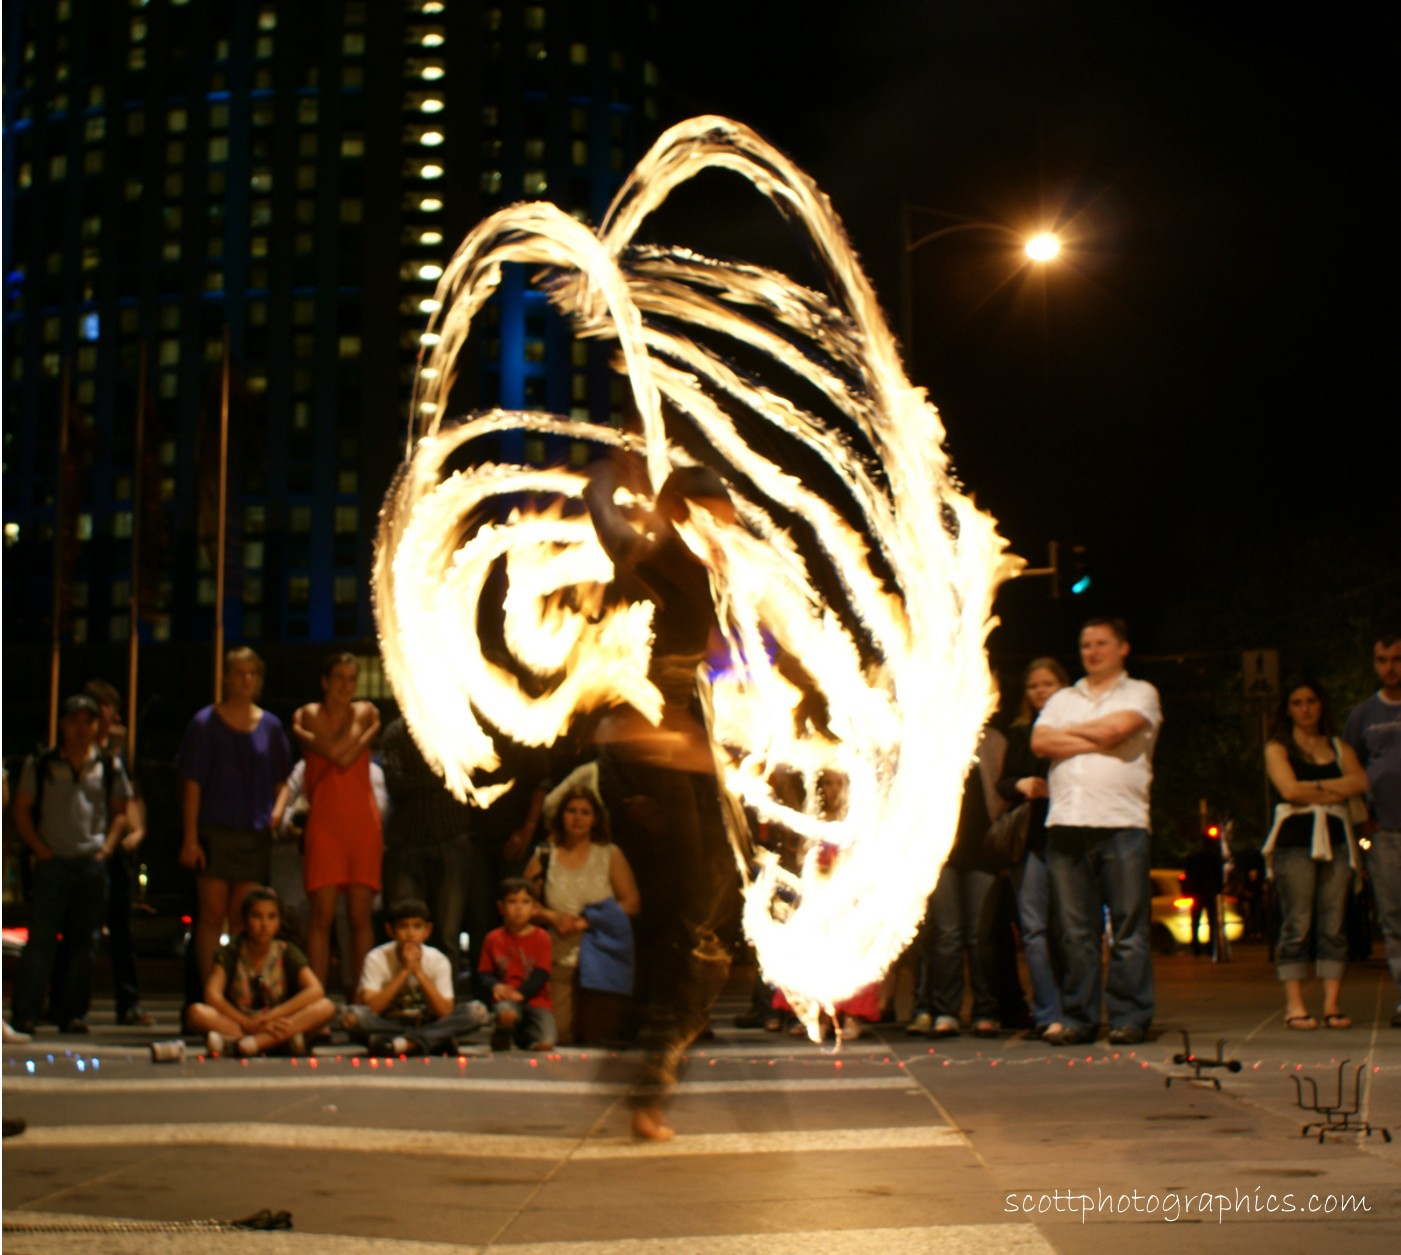 http://www.images.scottphotographics.com/shot-of-the-day/%2318/fire-twirler-southbank-promenade-melbourne-3.jpg